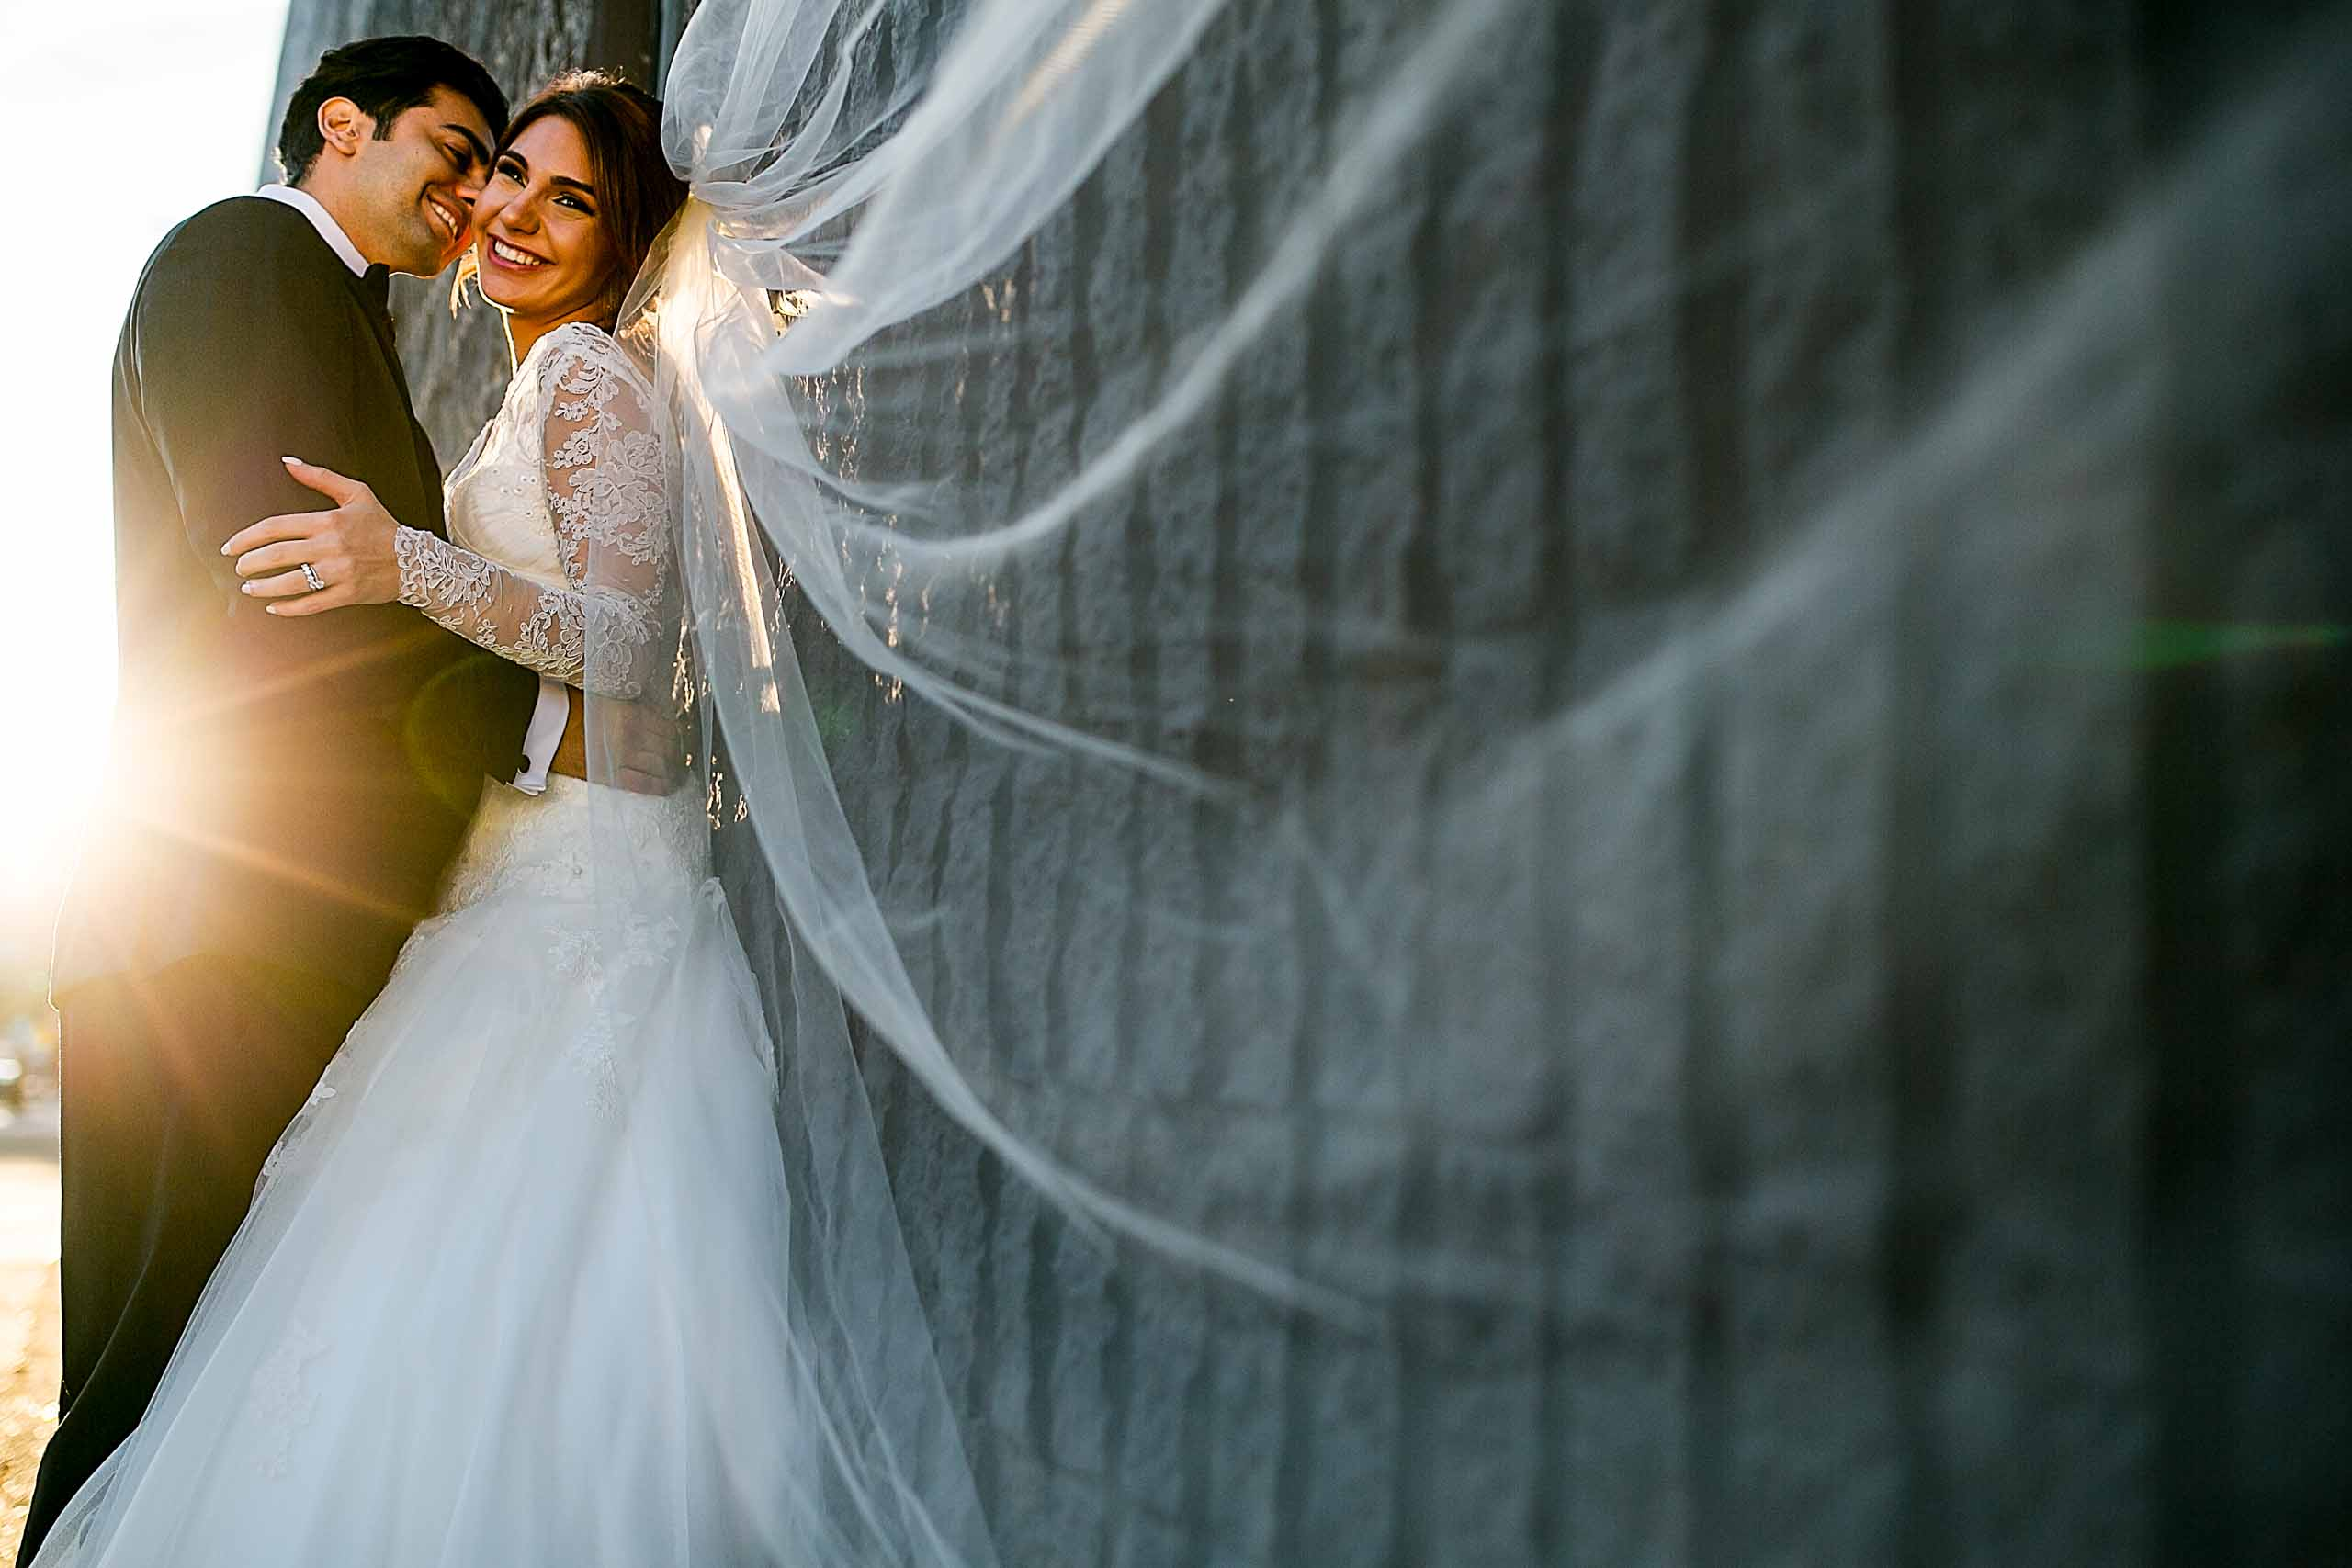 A warm sun flare photo of a bride and groom embracing near a stone wall during golden hour for their Portland Persian wedding at the Portland Art Museum